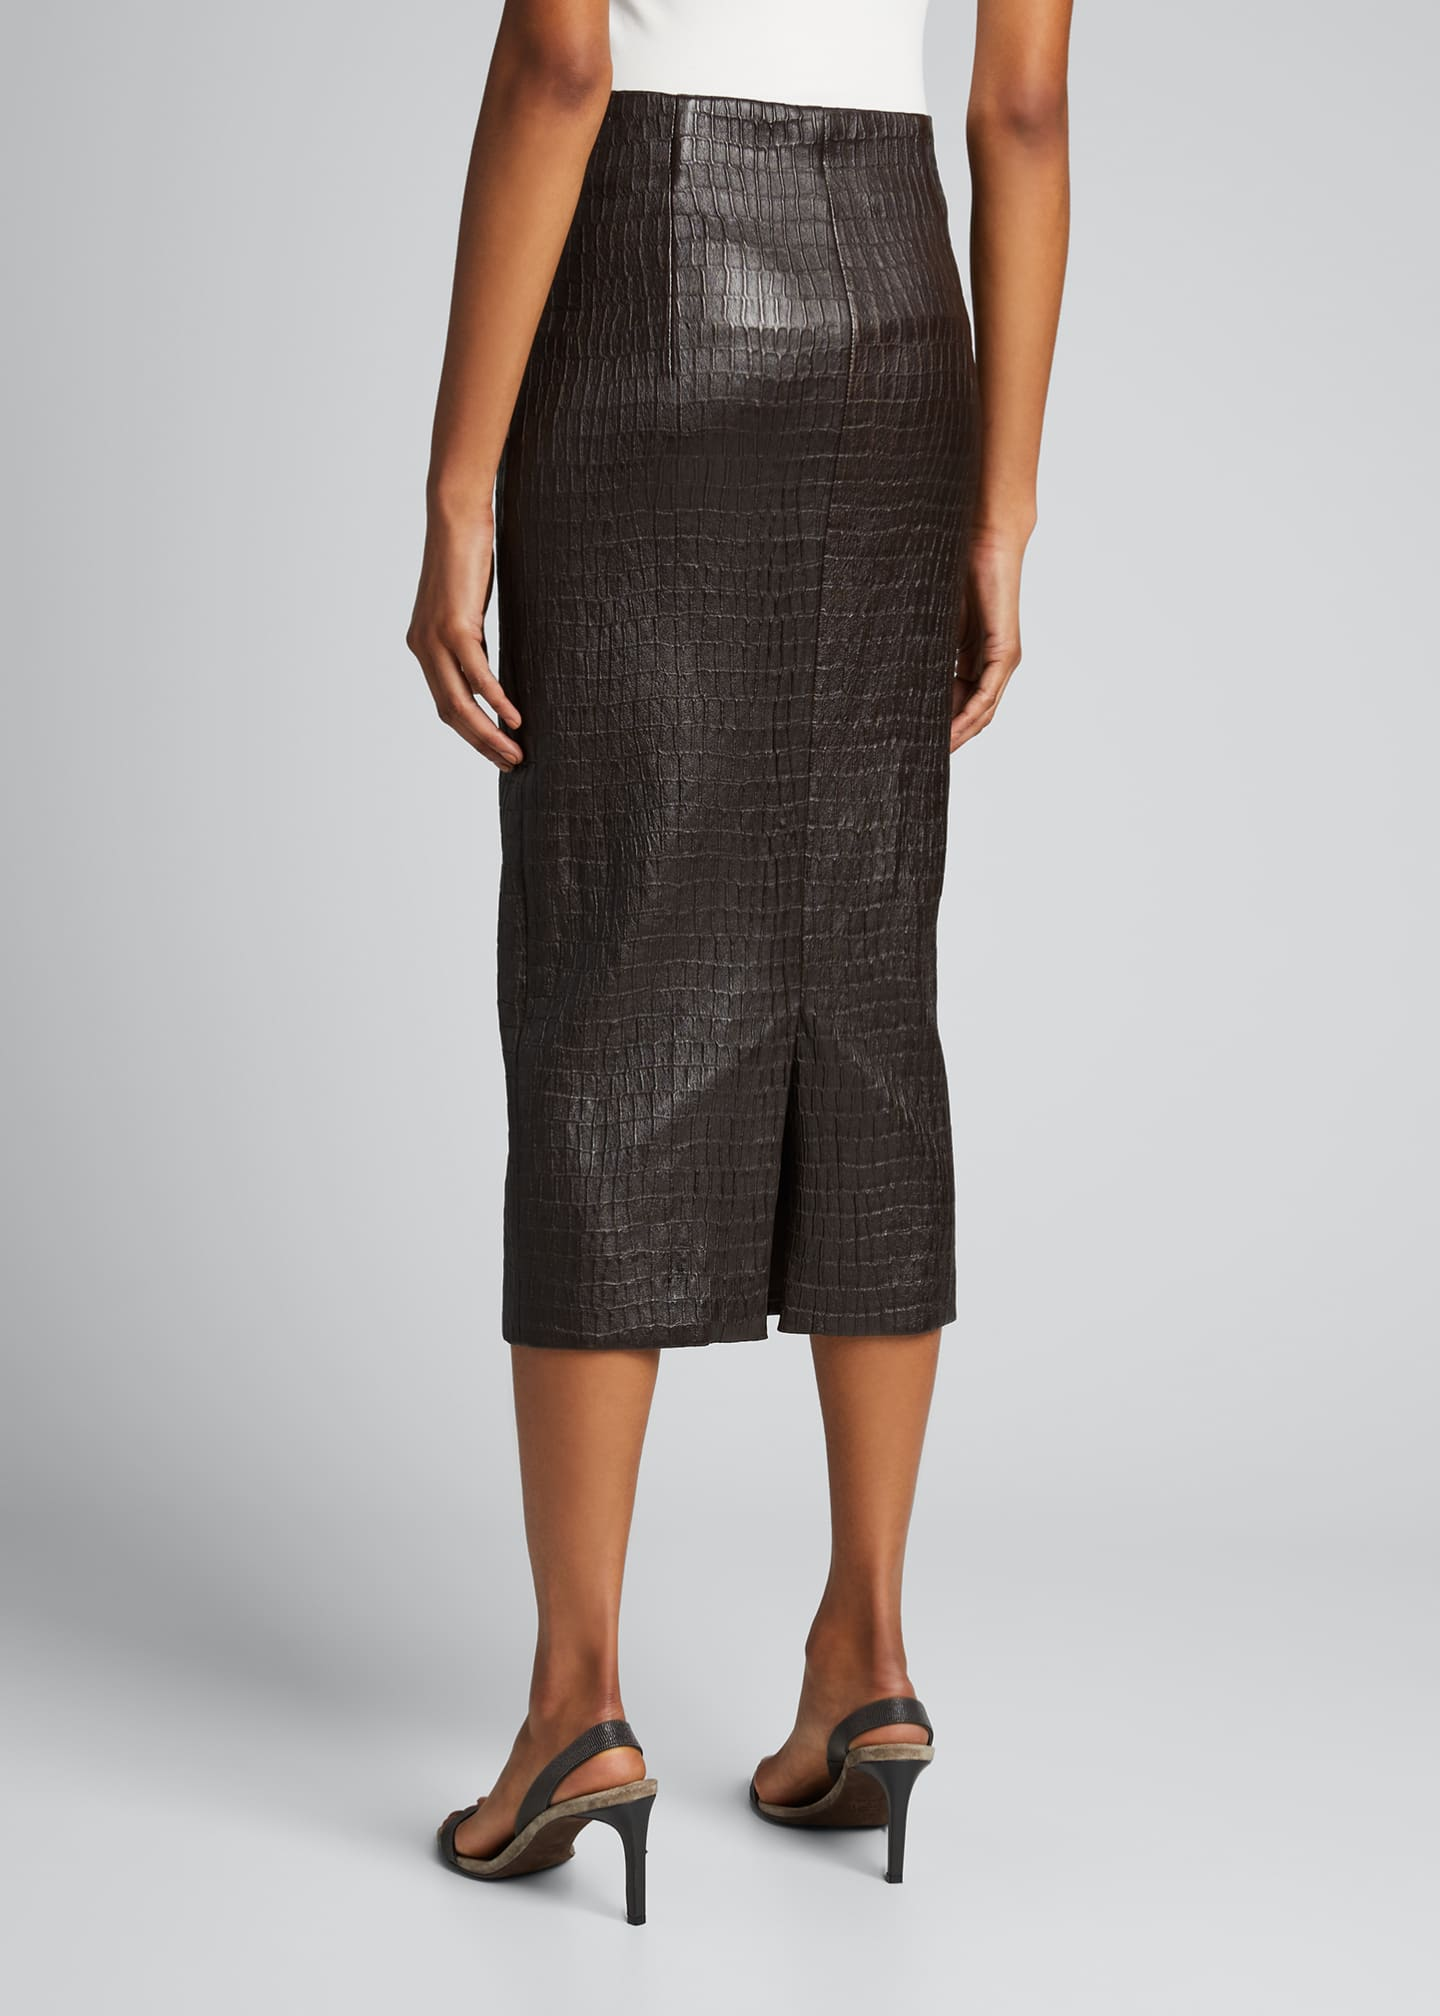 Image 2 of 5: Croc-Embossed Leather Pencil Skirt